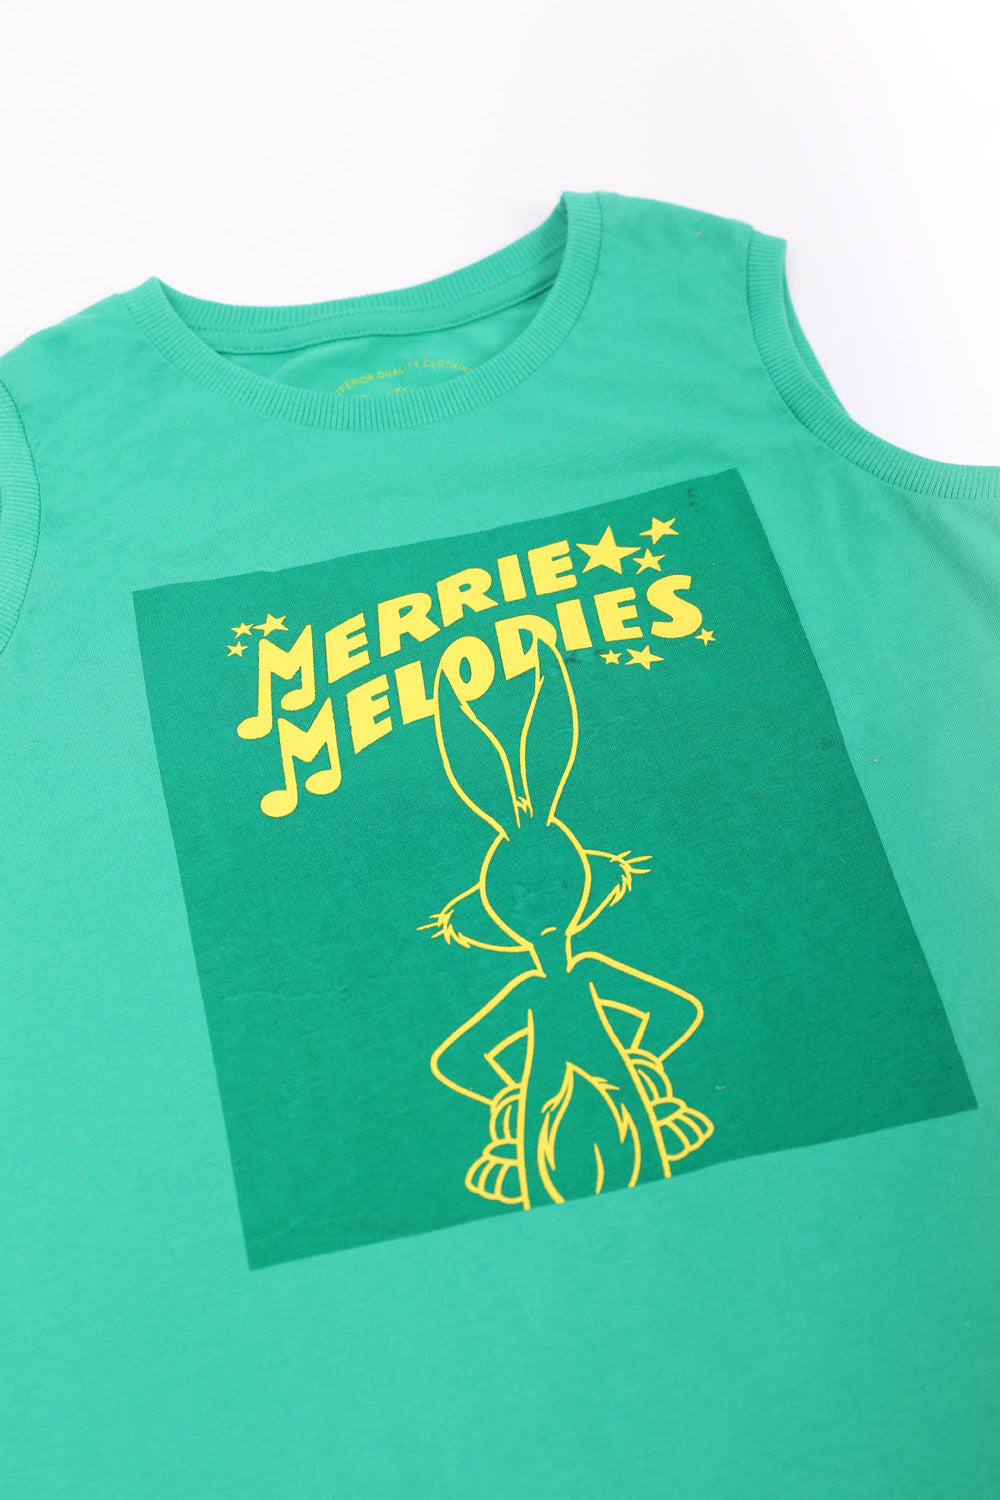 Merrie Melodies' T-shirt